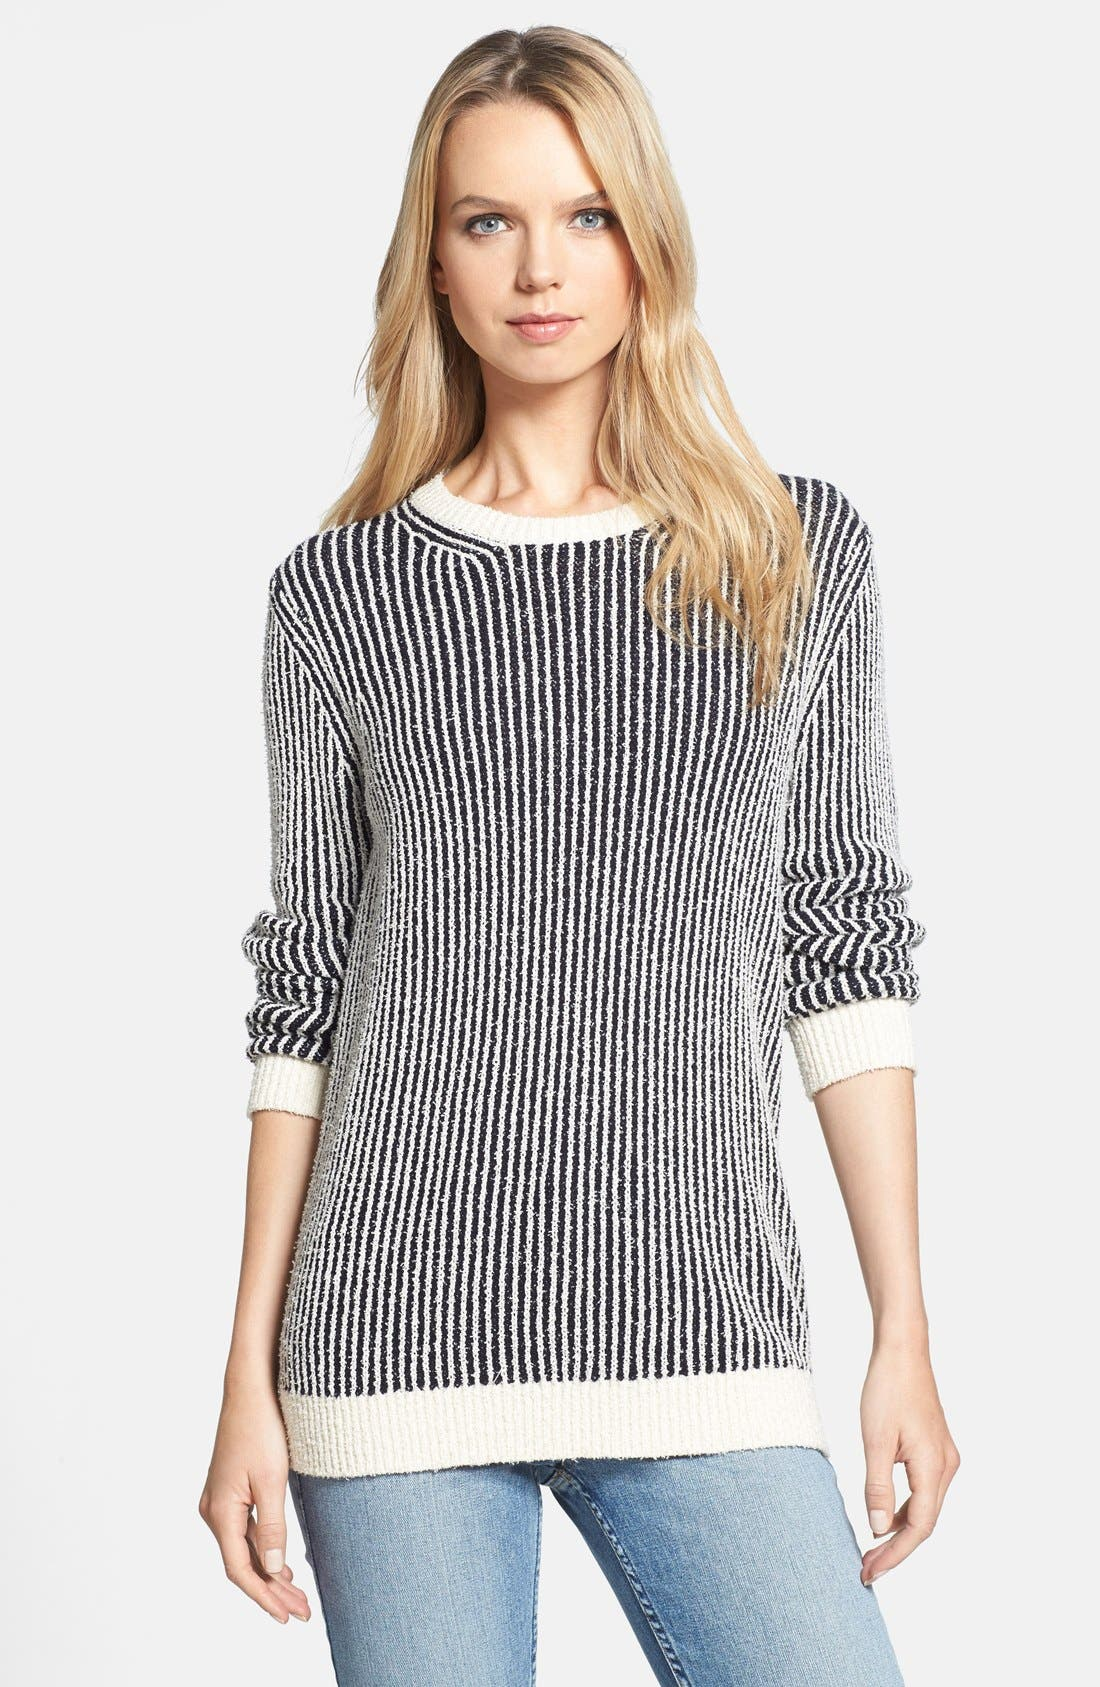 Alternate Image 1 Selected - Theory 'Jaidyn SN' Textured Stripe Sweater